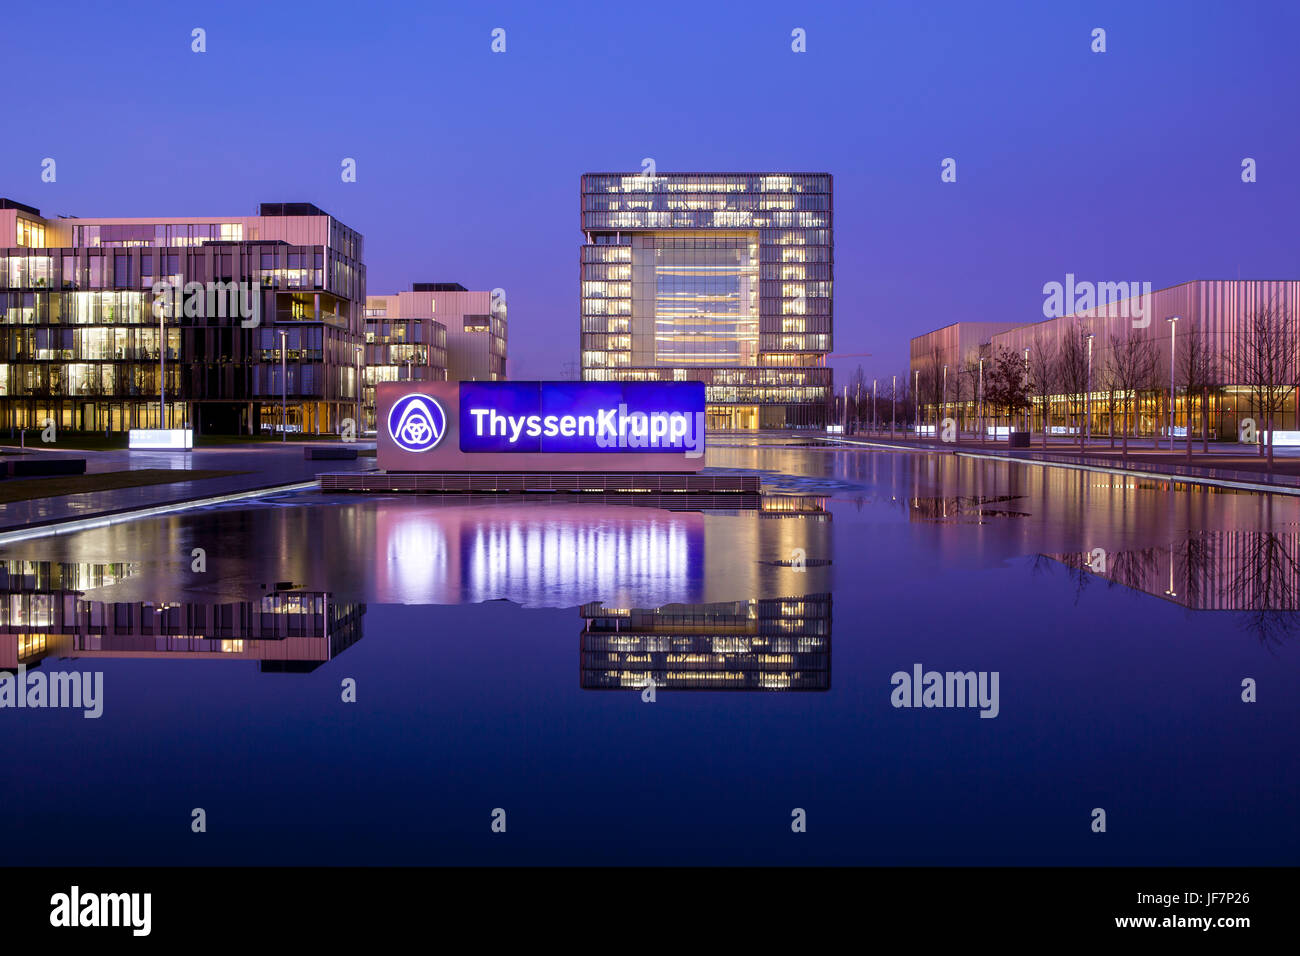 ThyssenKrupp Quartier, Head Office, Essen, North Rhine-Westphalia, Germany, Europe, ThyssenKrupp Quartier, Hauptverwaltung, Stock Photo